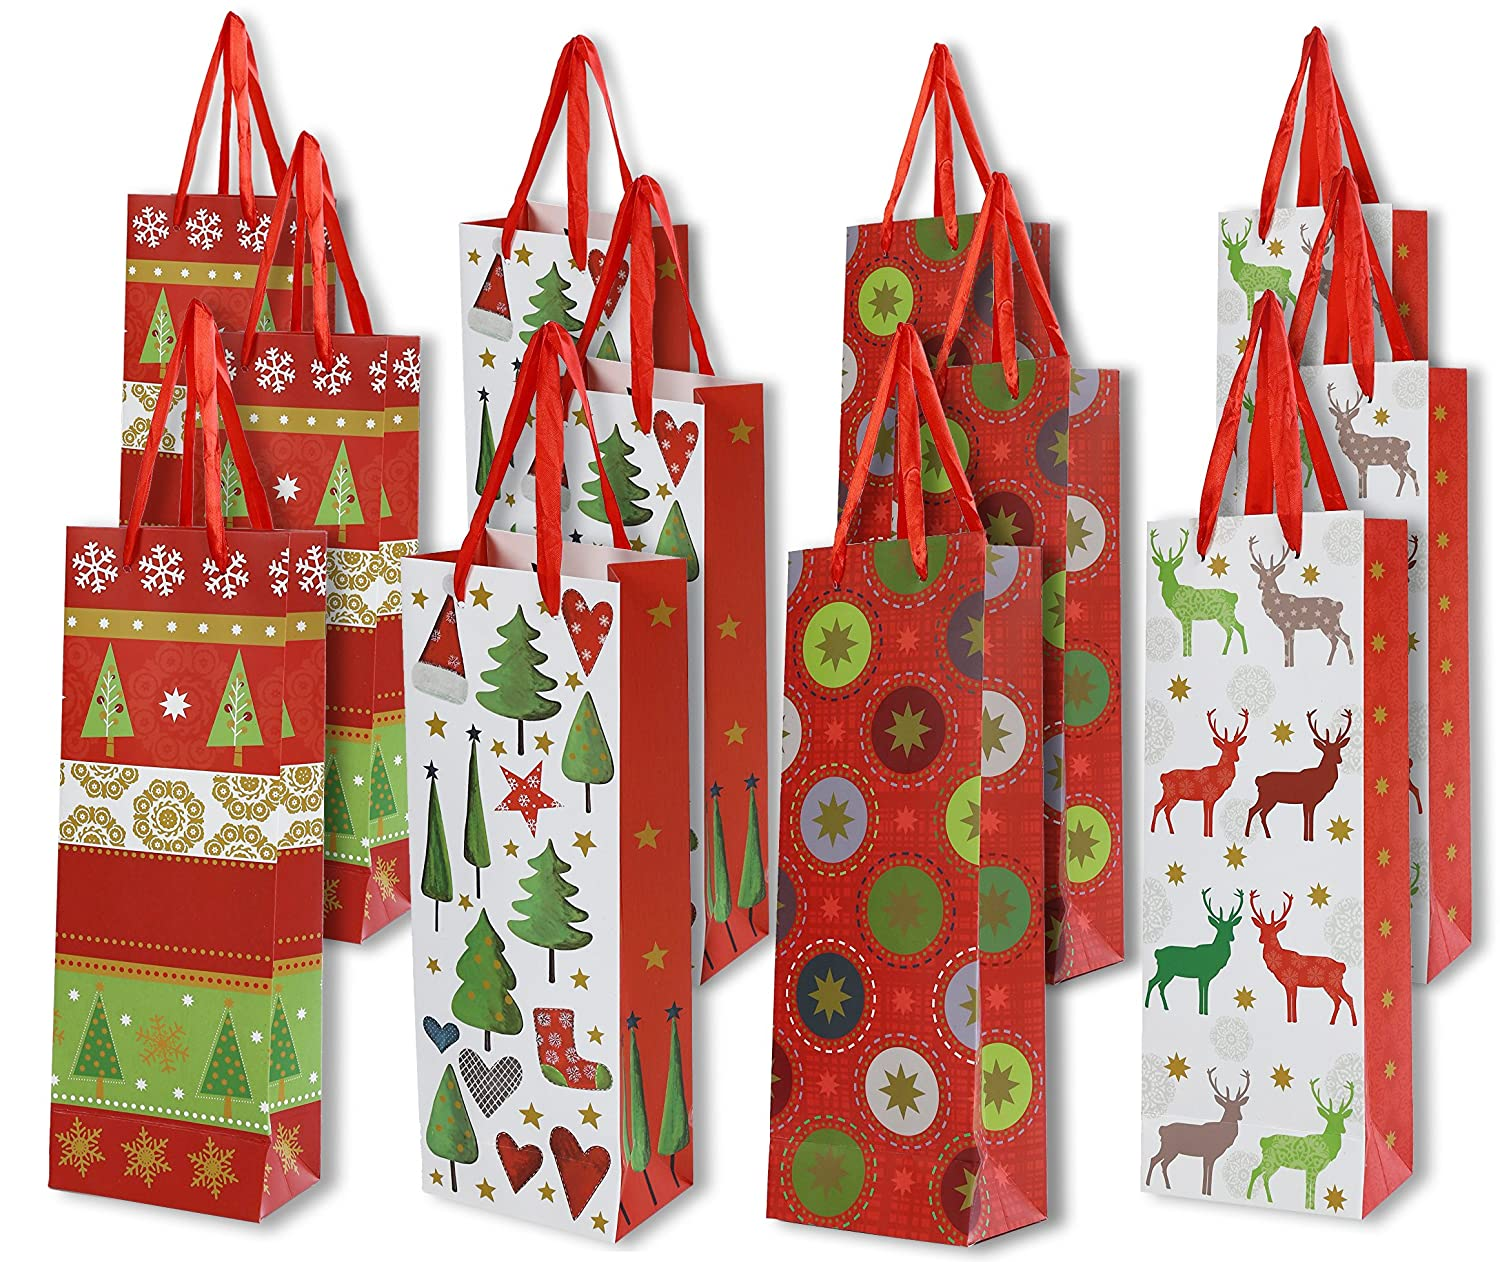 Christmas Liquor.Christmas Wine Gift Bags 12 Pack Single Bottle Storage Bag For Alcohol Liquor Spirits Sparkling 4 Holiday Paper Designs 5 X 3 5 X 14 Inches